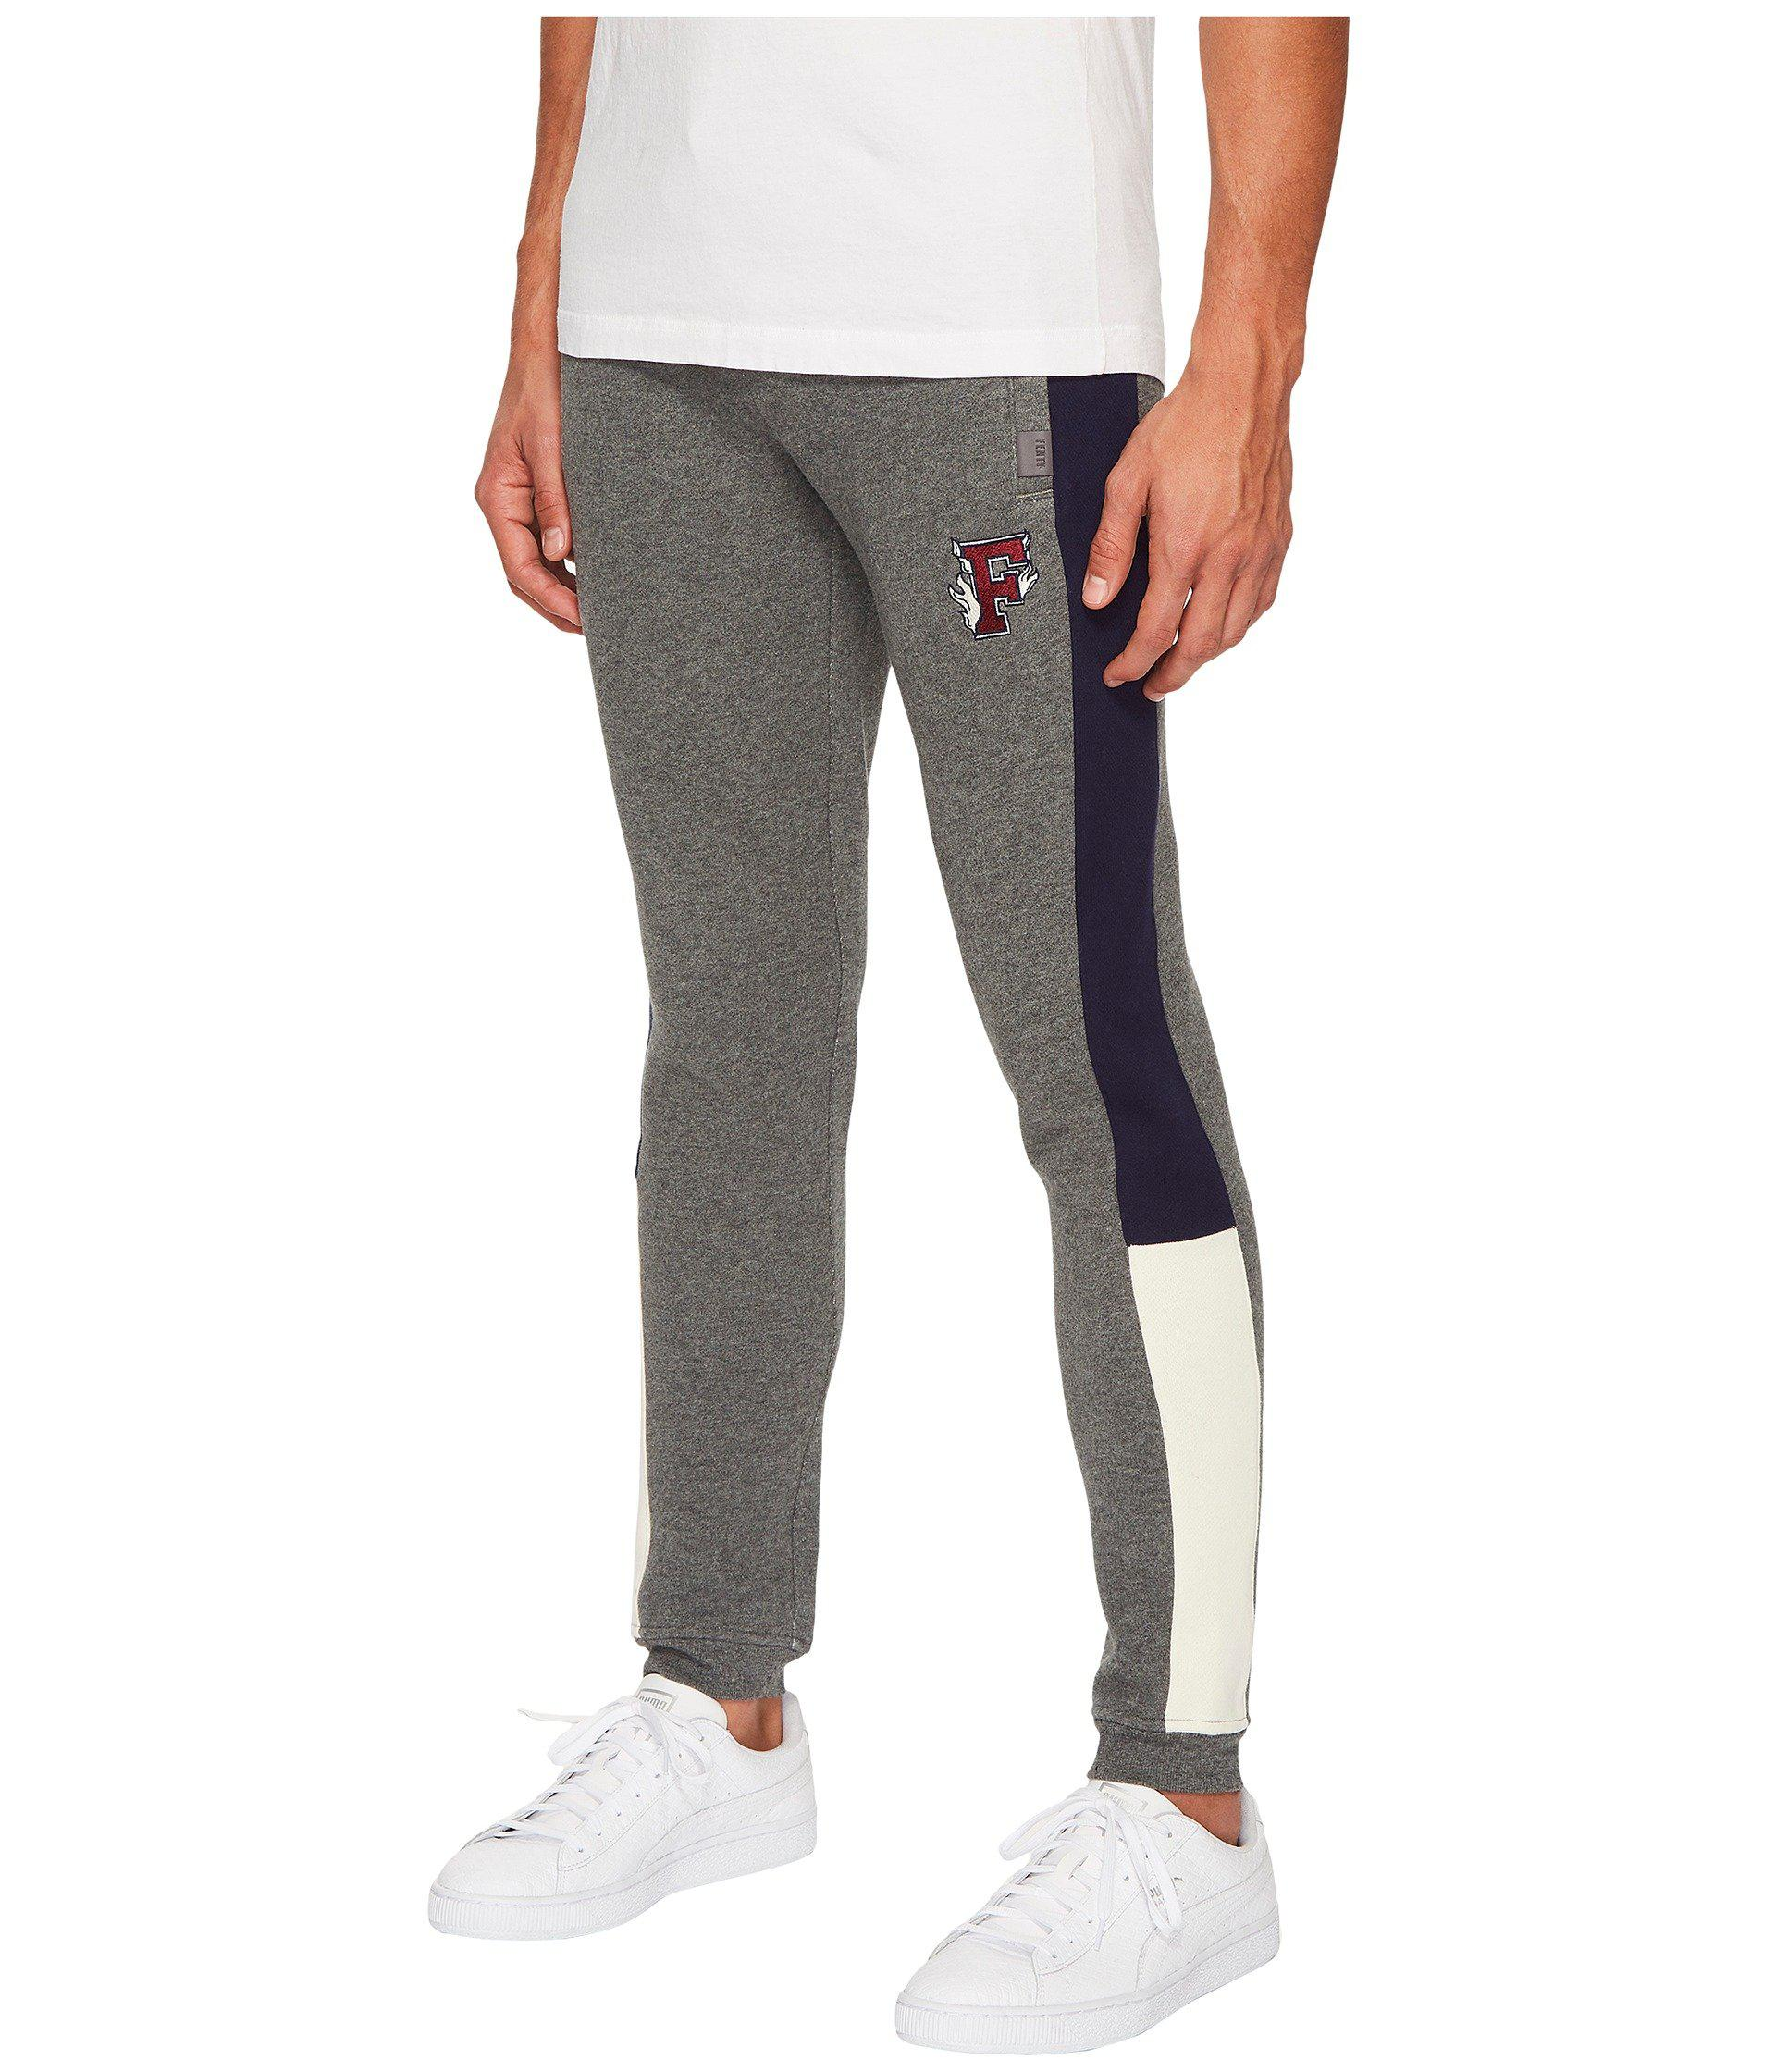 63b60461c445 Lyst - PUMA X Fenty By Rihanna Fitted Panel Sweatpants in Gray for Men